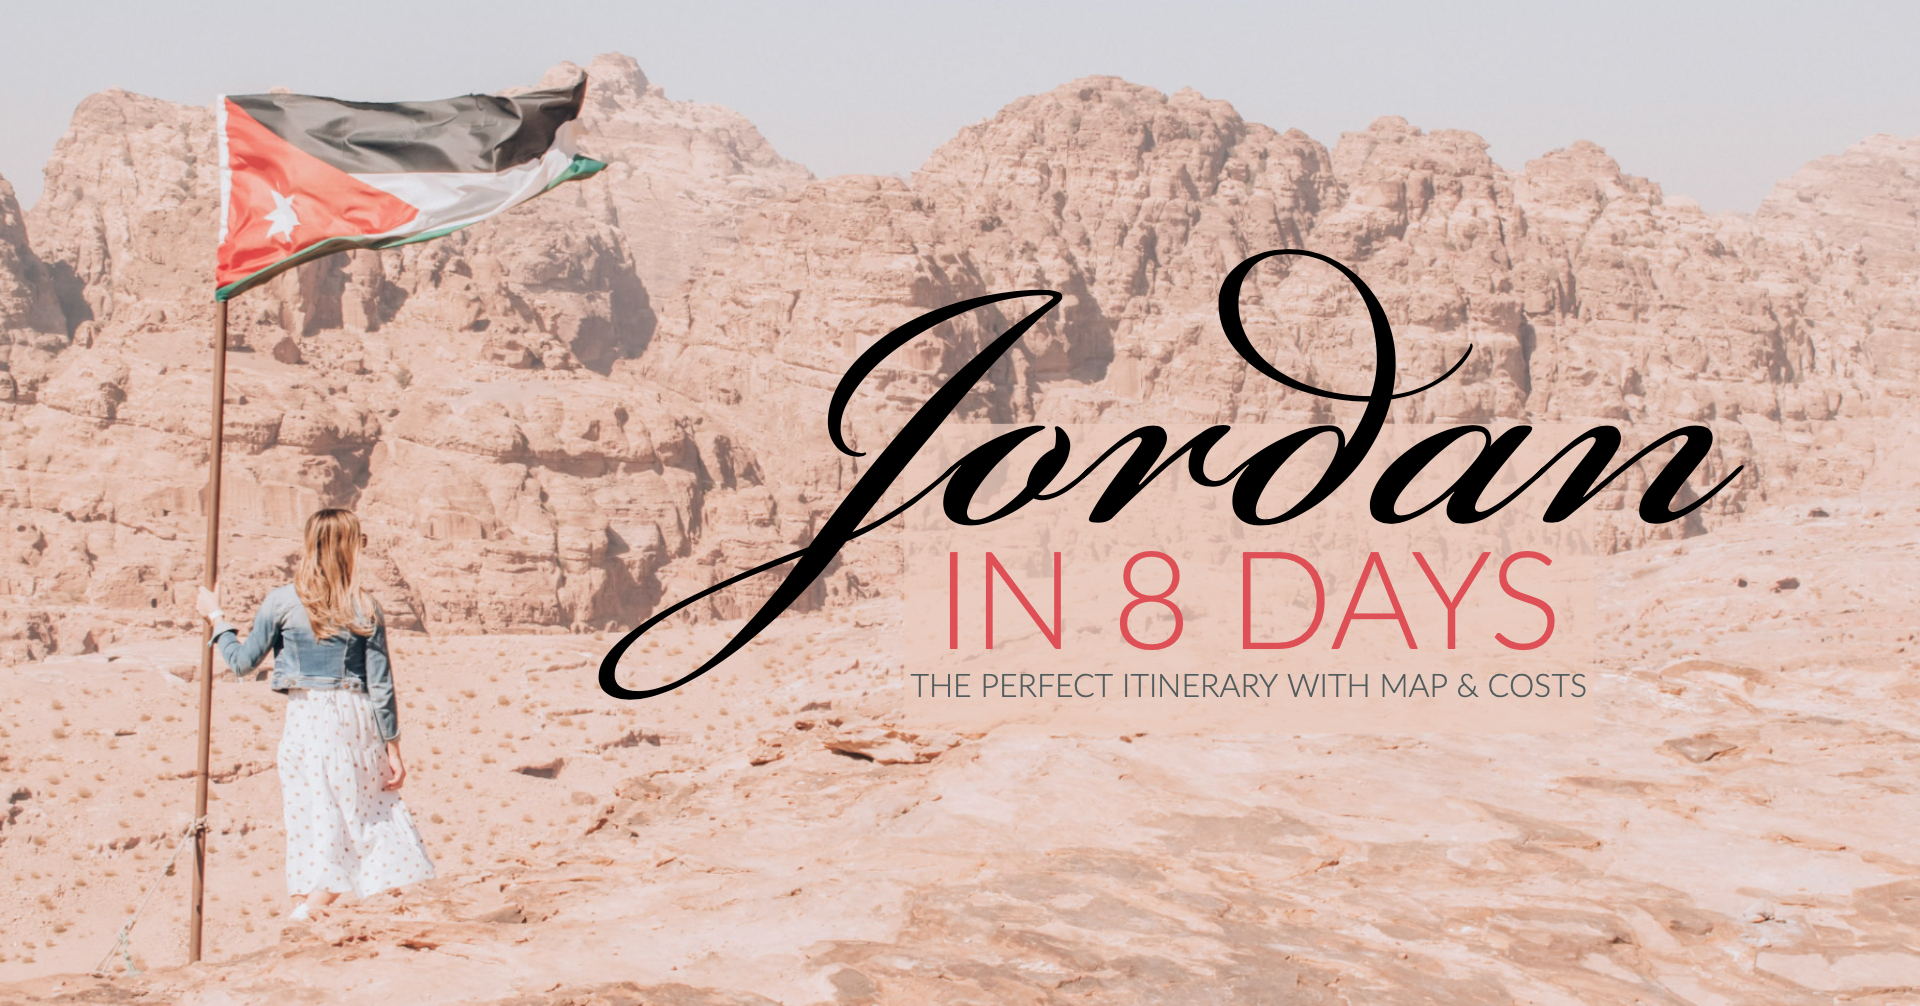 How to spend 8 days in Jordan with map and costs